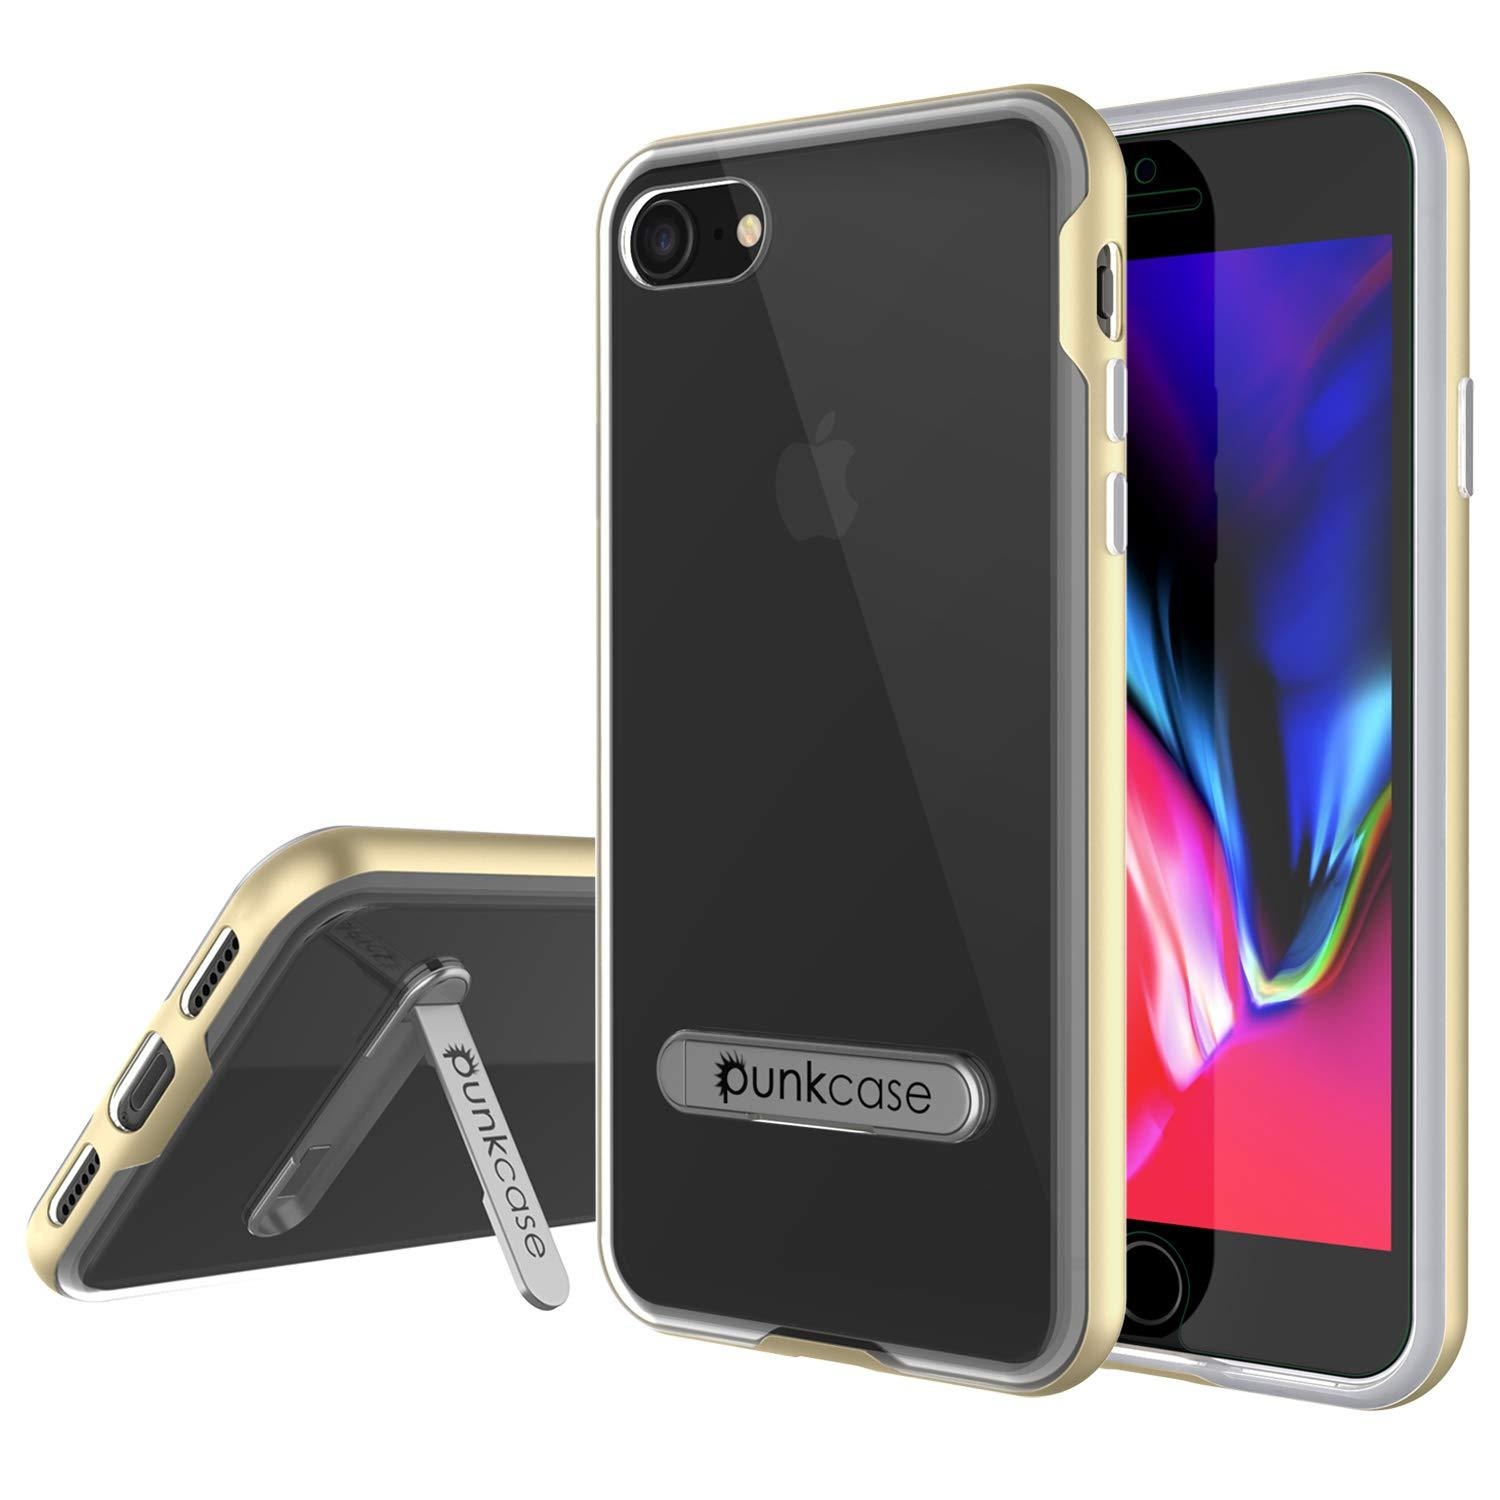 "PunkCase iPhone SE (4.7"") Lucid 3.0 Screen Protector W/ Anti-Shock Case [Gold]"